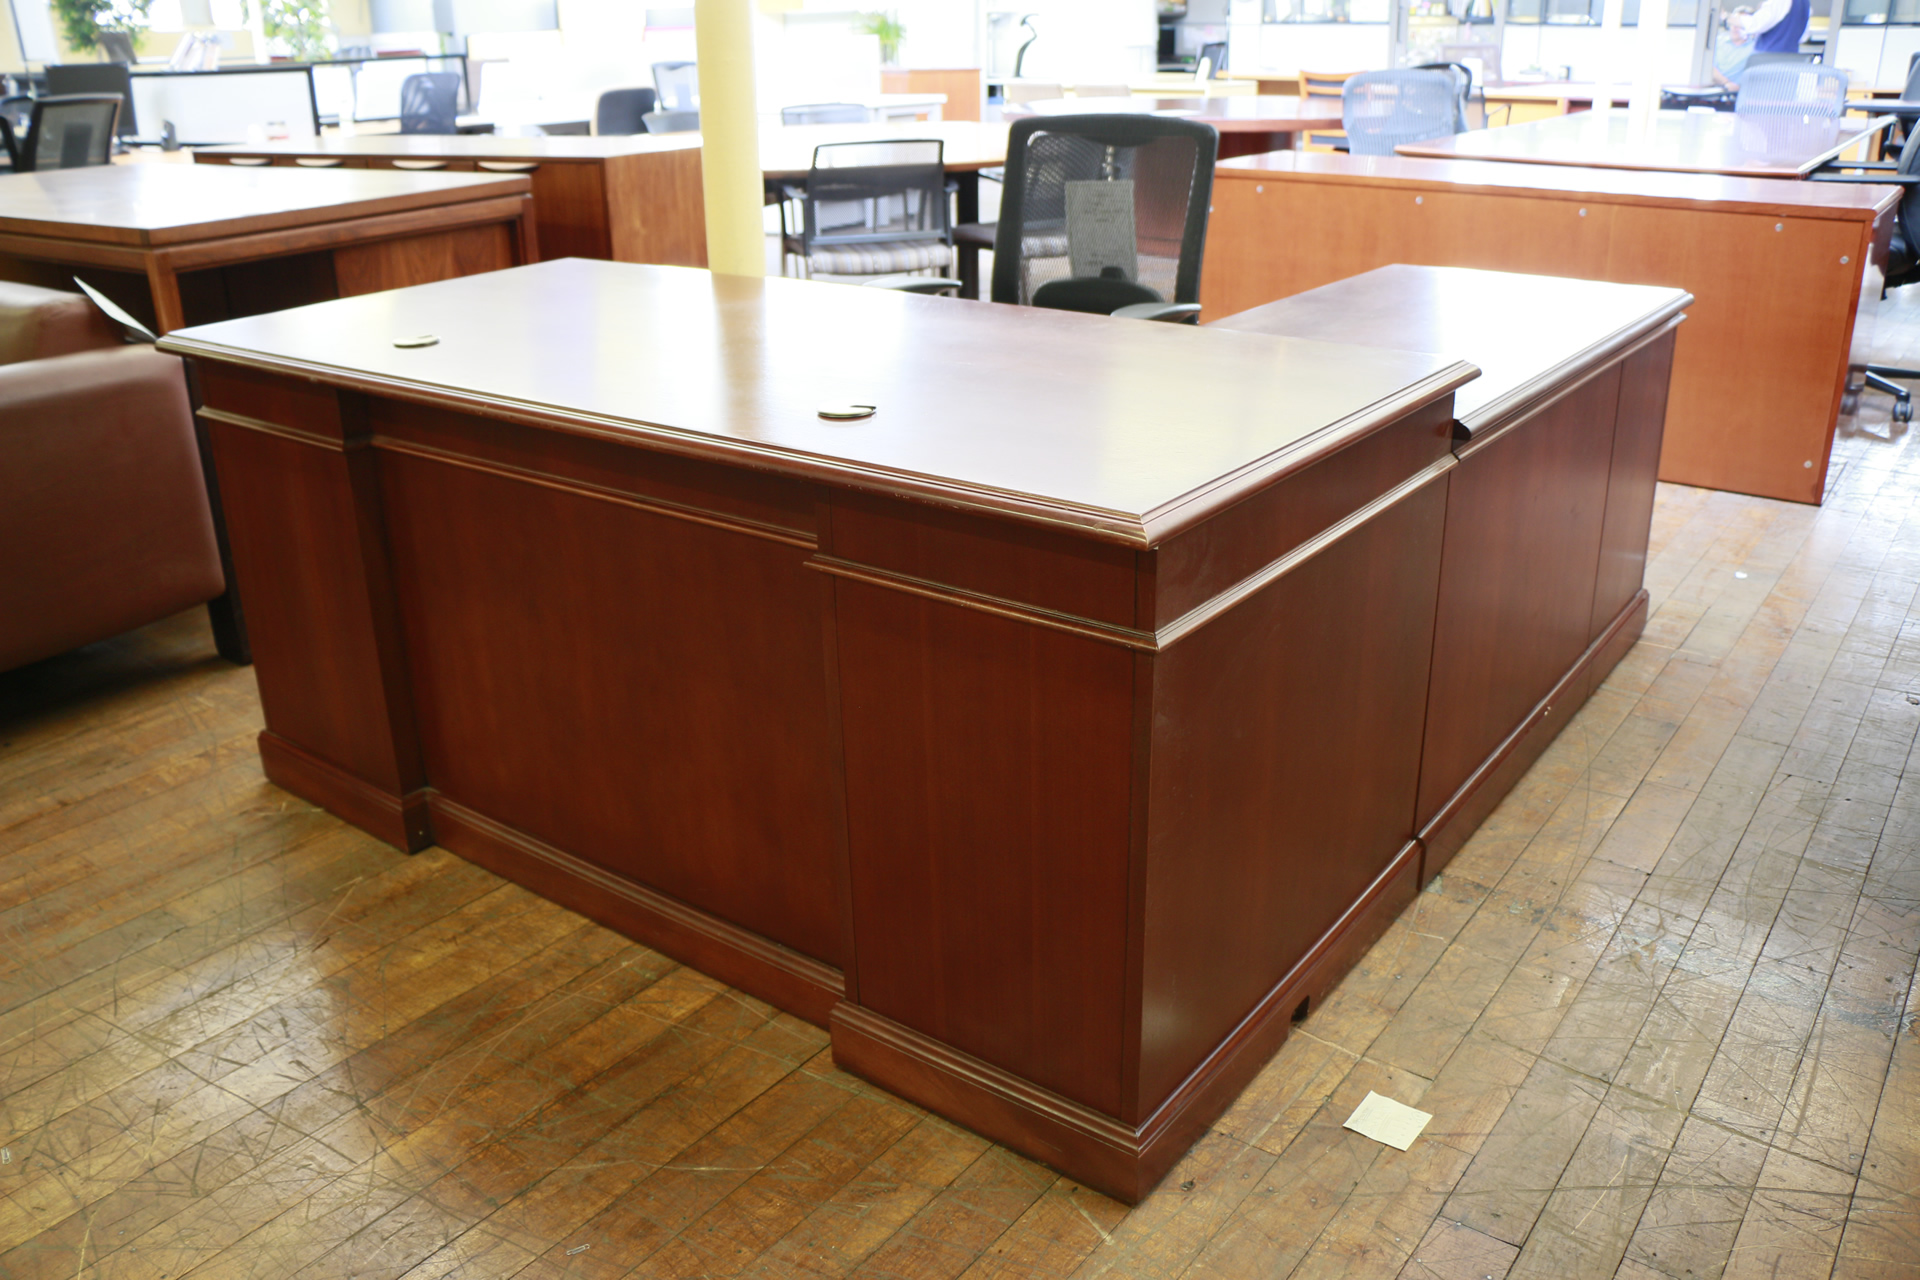 peartreeofficefurniture_peartreeofficefurniture_mg_3703.jpg